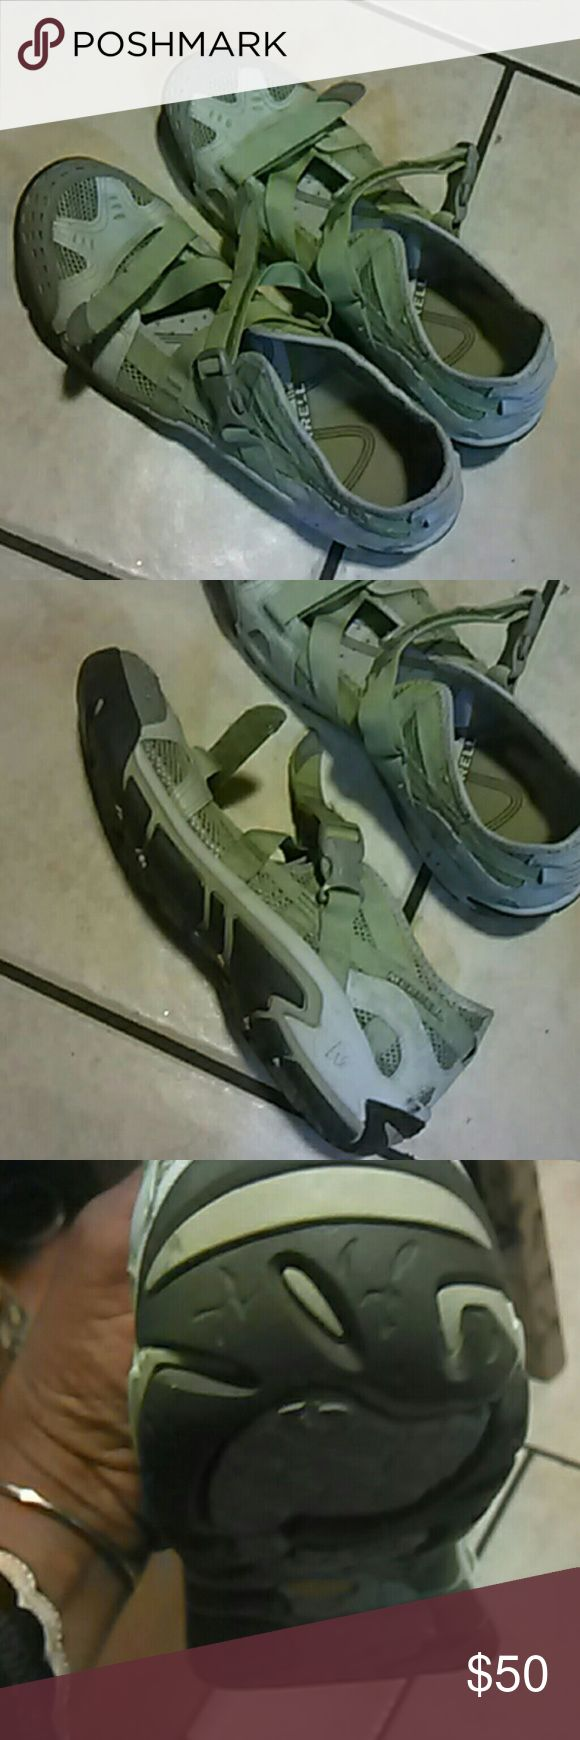 """MERRELL"" Shoe's Light green an grey, made out of canvas an mesh. With Velcro tie straps. Merrell Shoes Flats & Loafers"